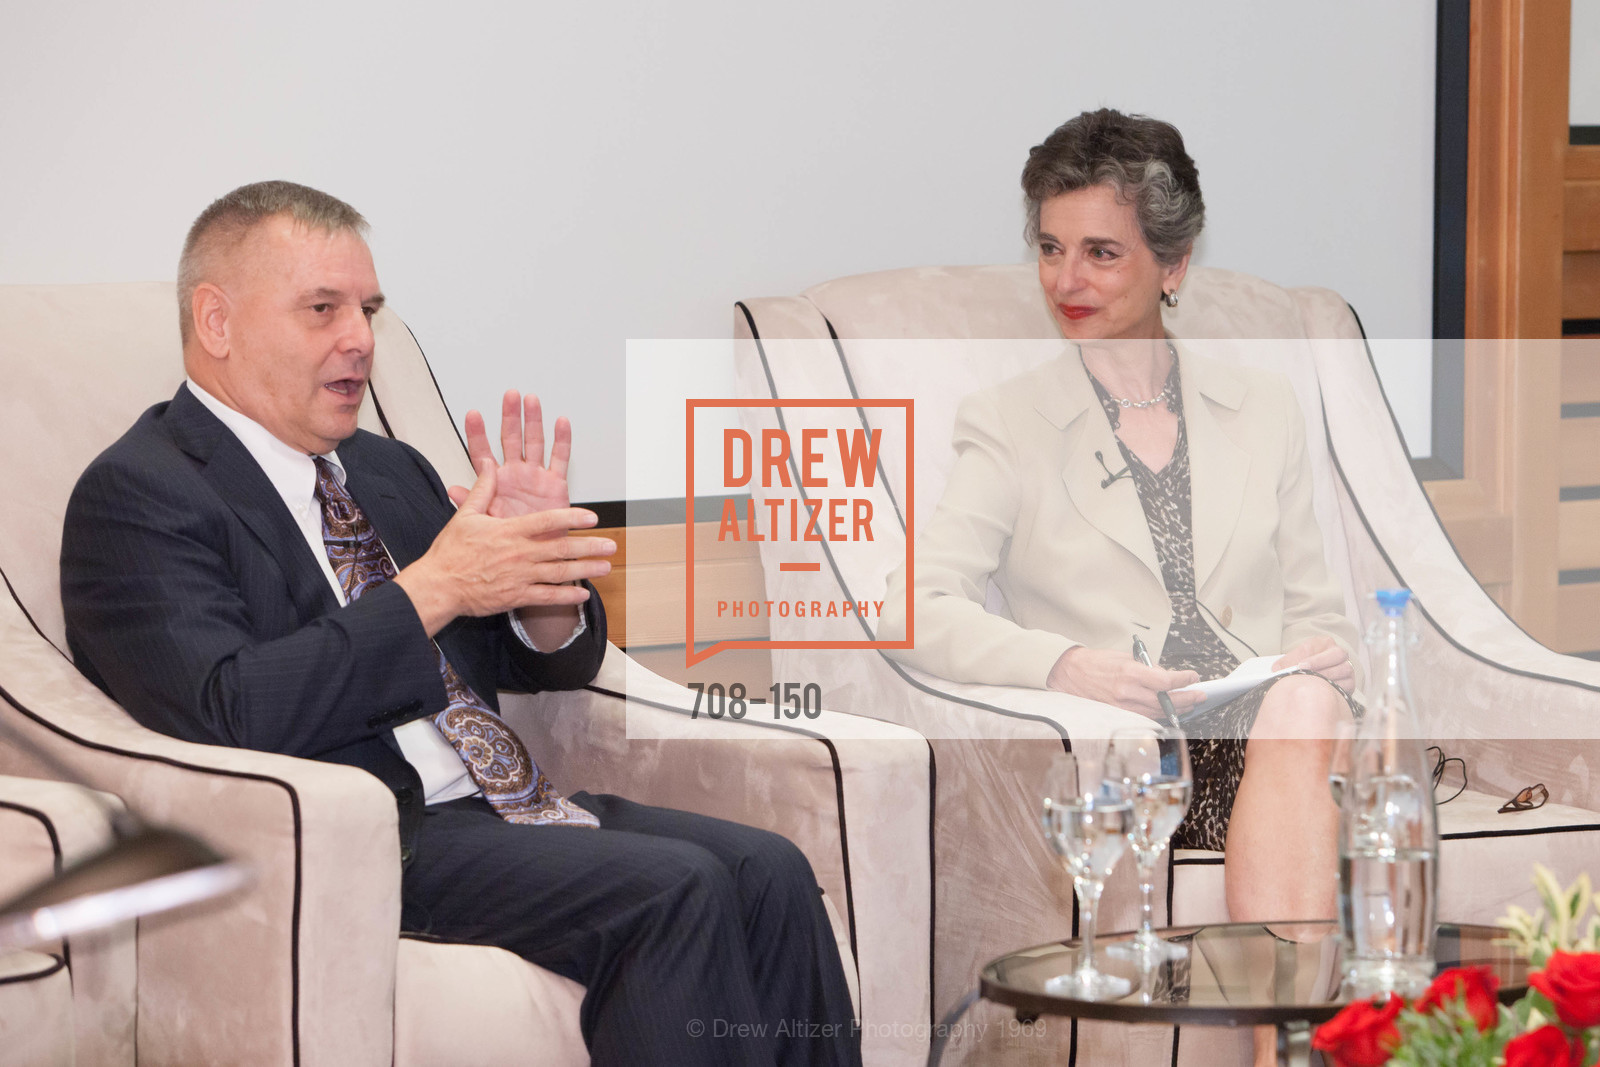 General James Cartwright, Barbara Slavin, Ploughshares Fund Presenting CHAIN REACTION 2015, The Open Square at Futures Without Violence. 100 Montgomery Street, June 7th, 2015,Drew Altizer, Drew Altizer Photography, full-service agency, private events, San Francisco photographer, photographer california